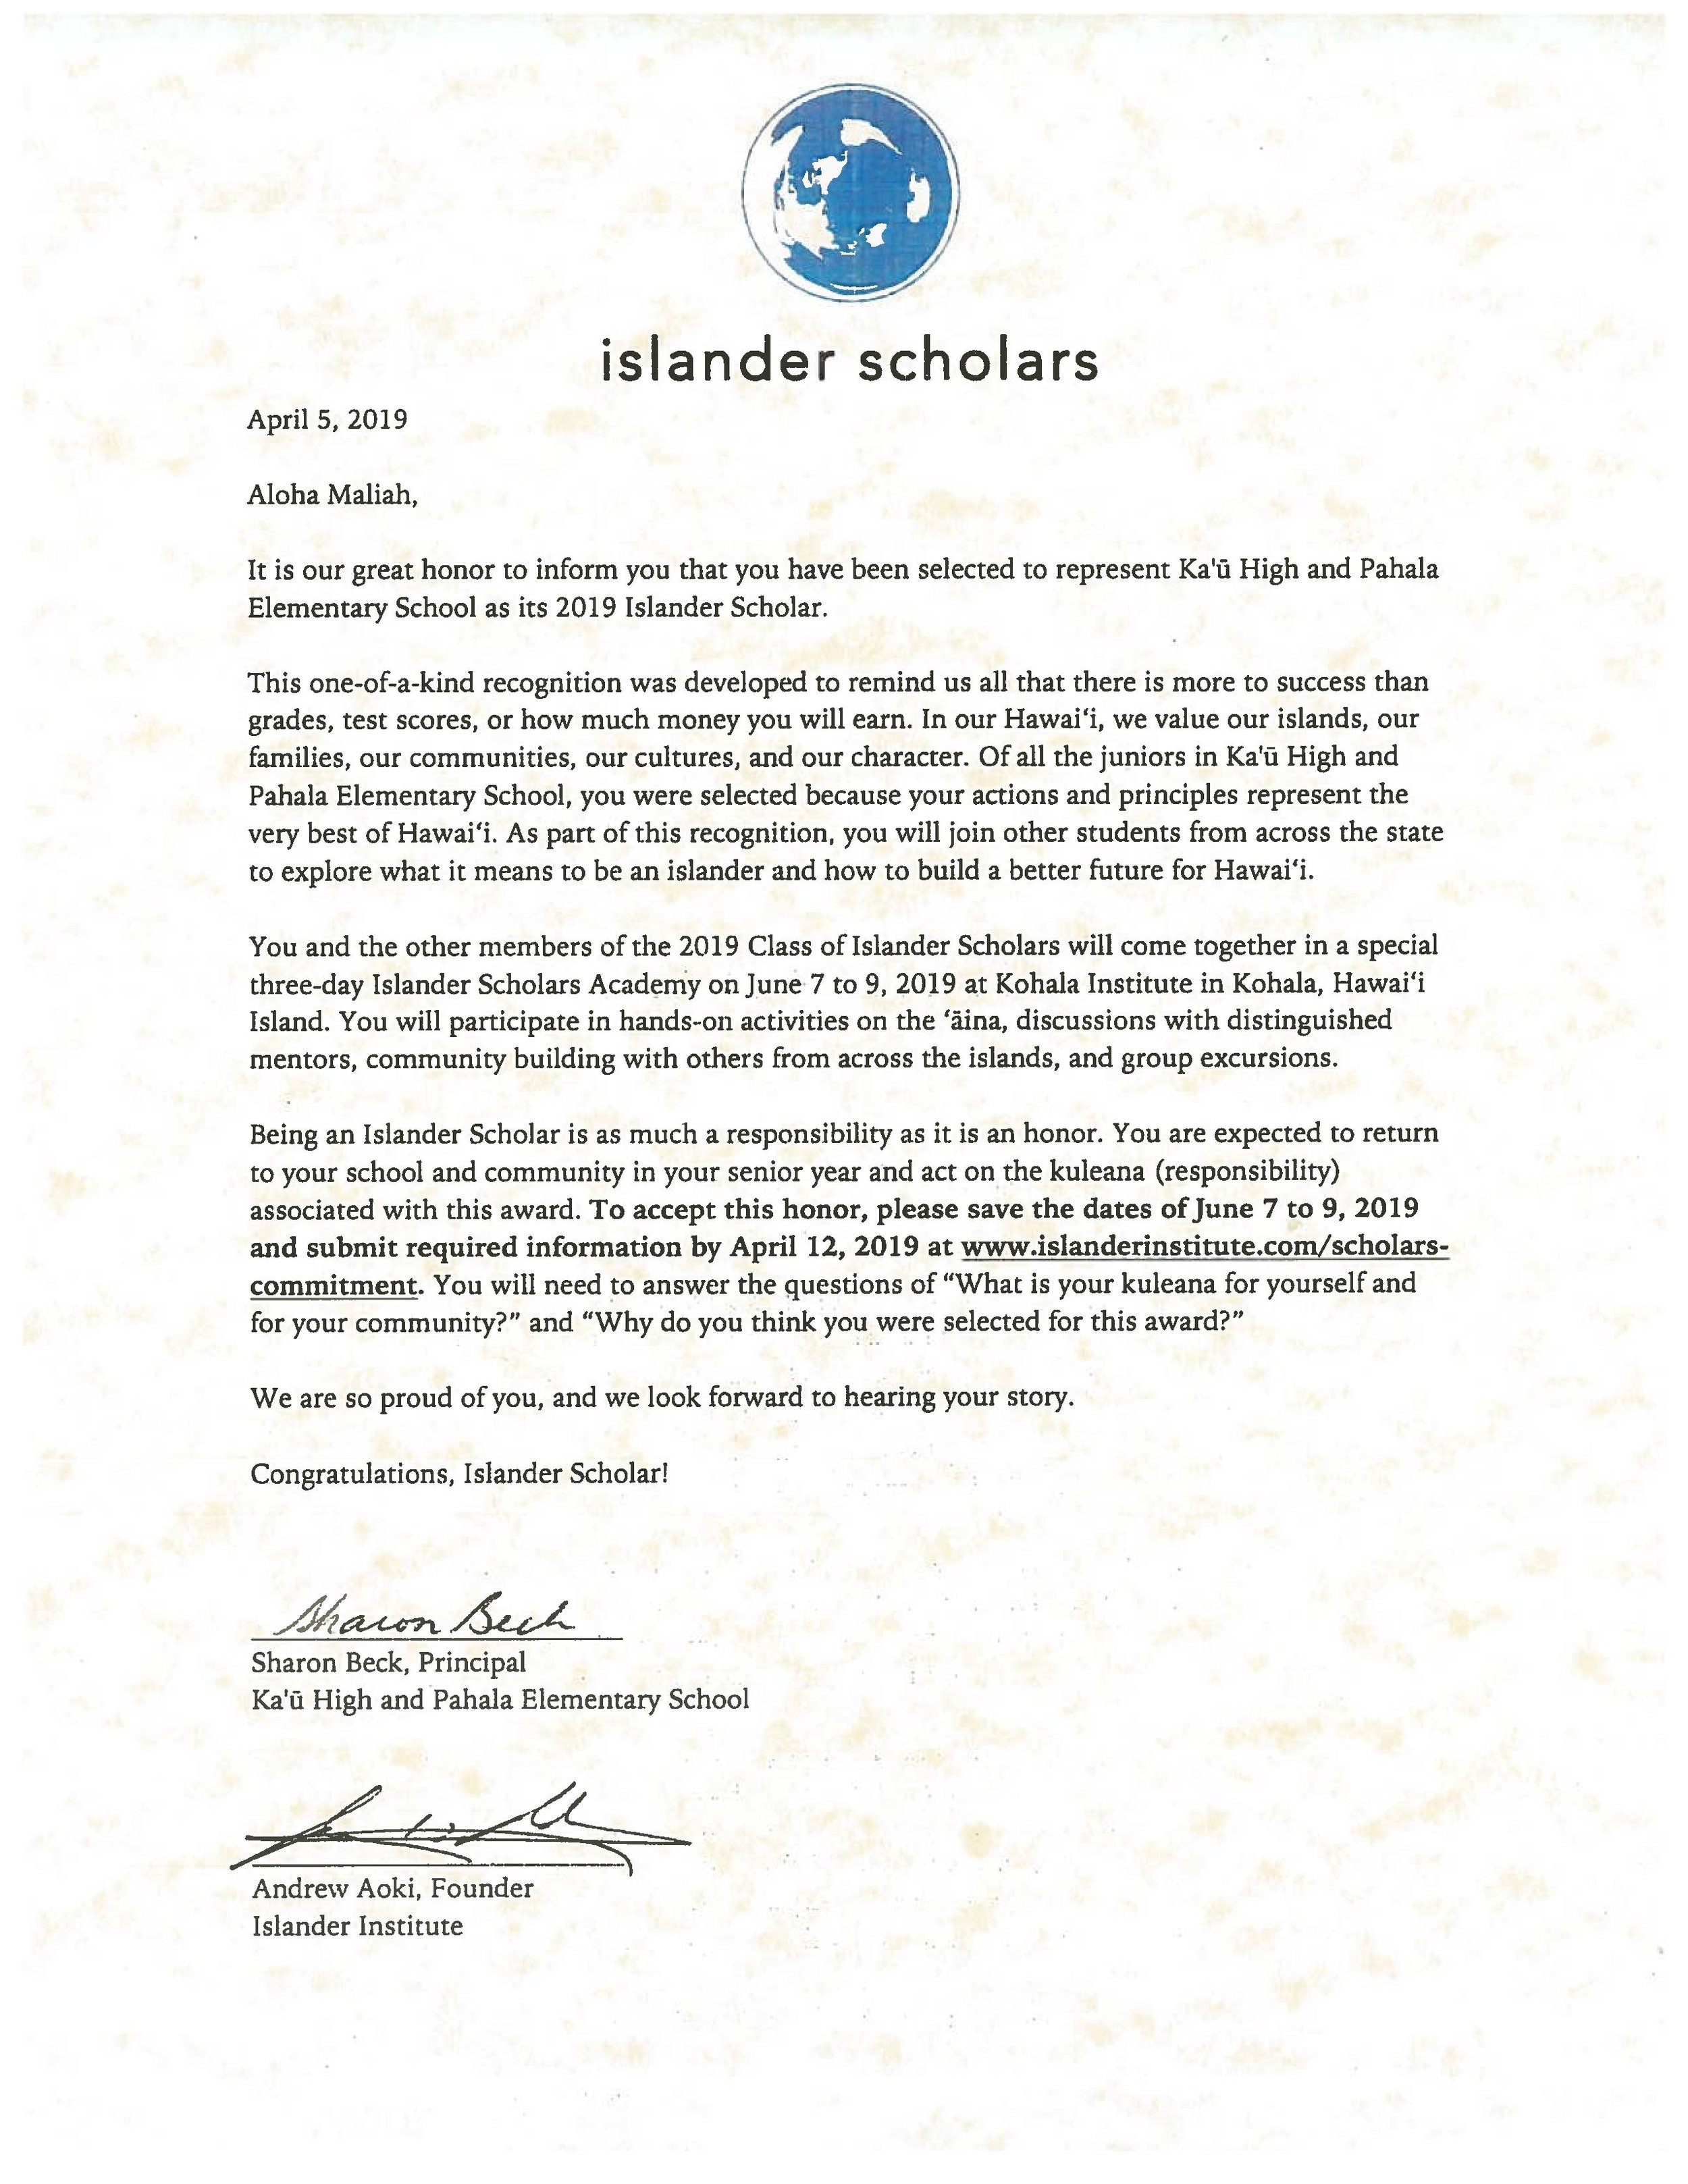 Student Ababa_M. Island Scholar Award-page-001.jpg